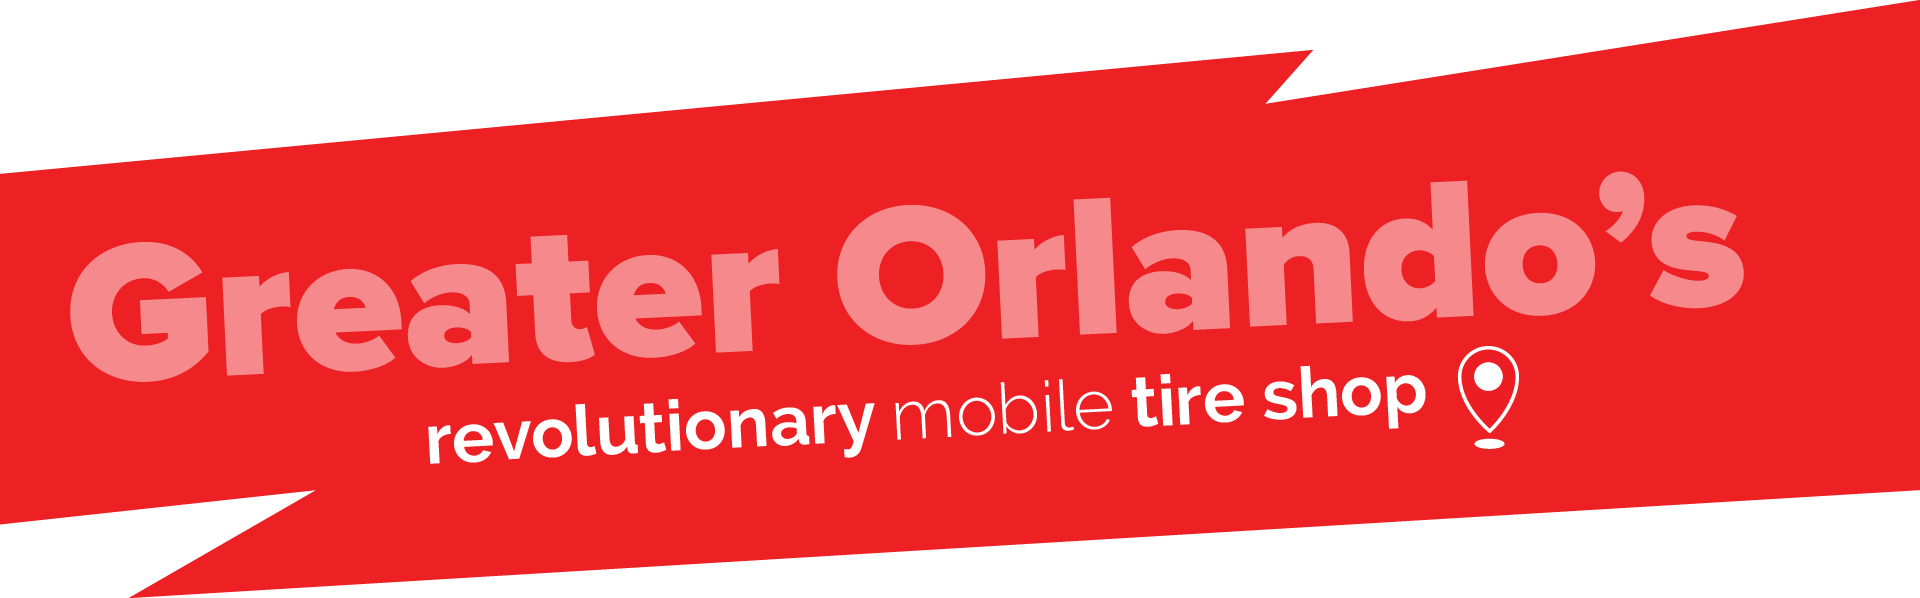 Orlando's premier Mobile Tire Shop